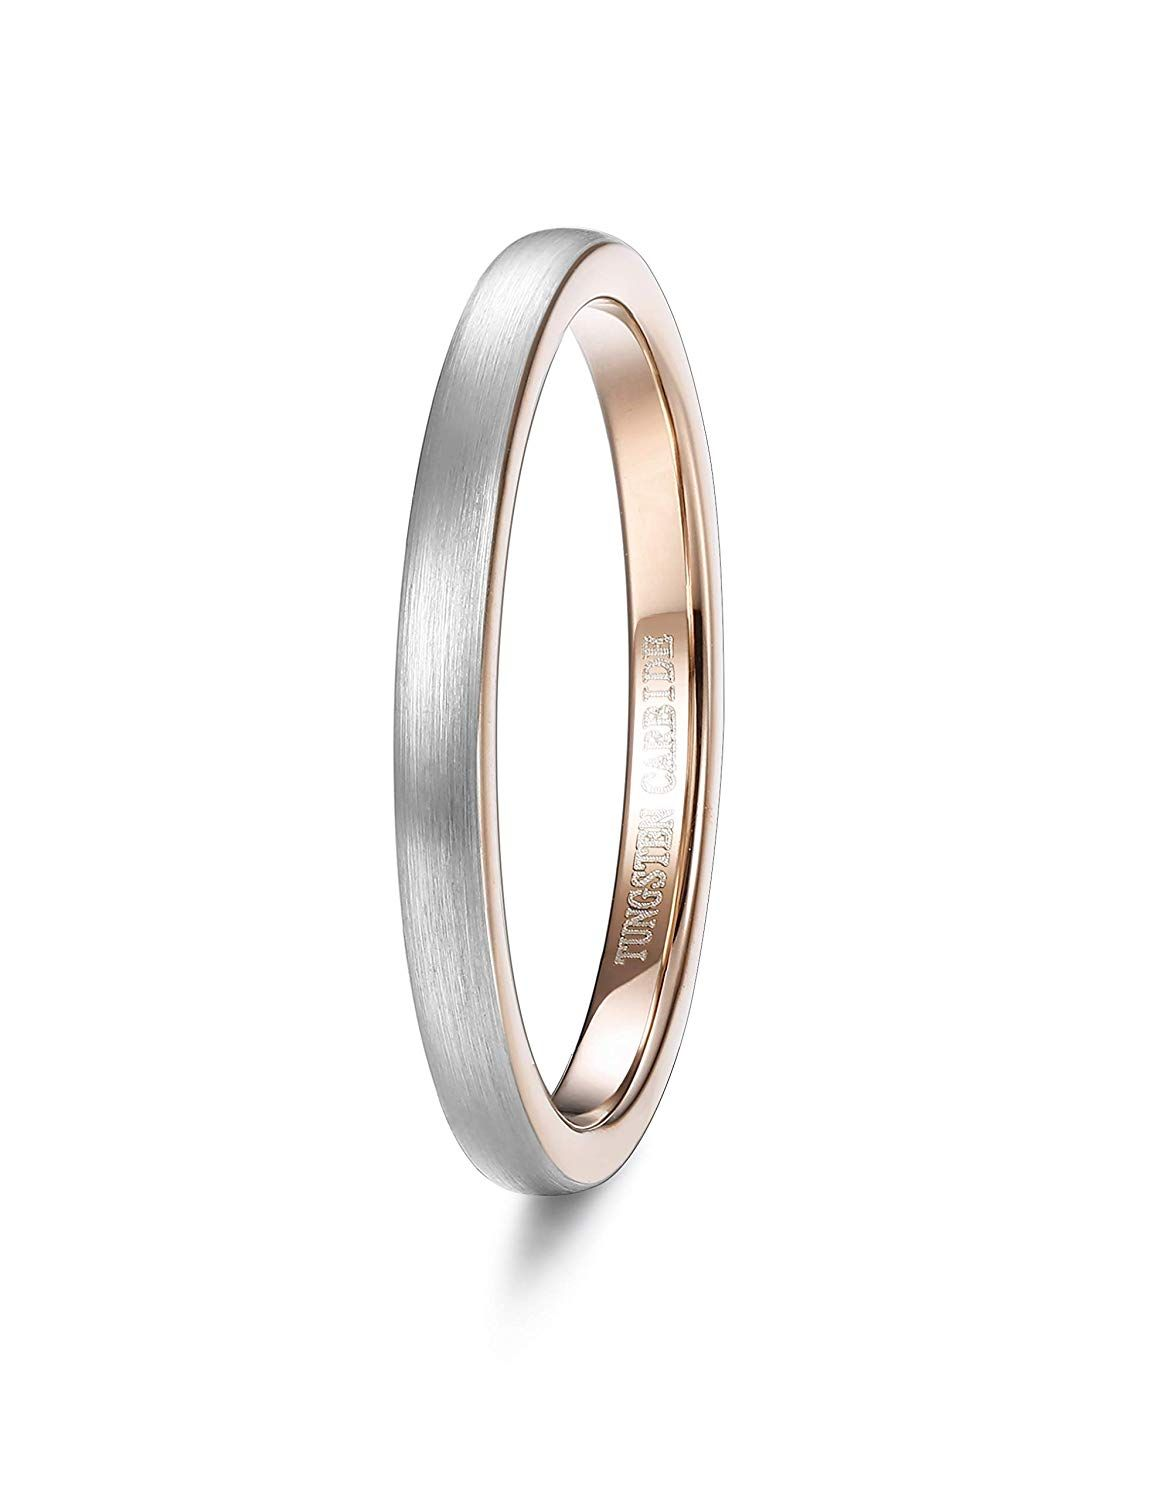 49e0caa1a63be Tungary 2mm Tungsten Wedding Ring for Women Rose Gold Plated Domed ...